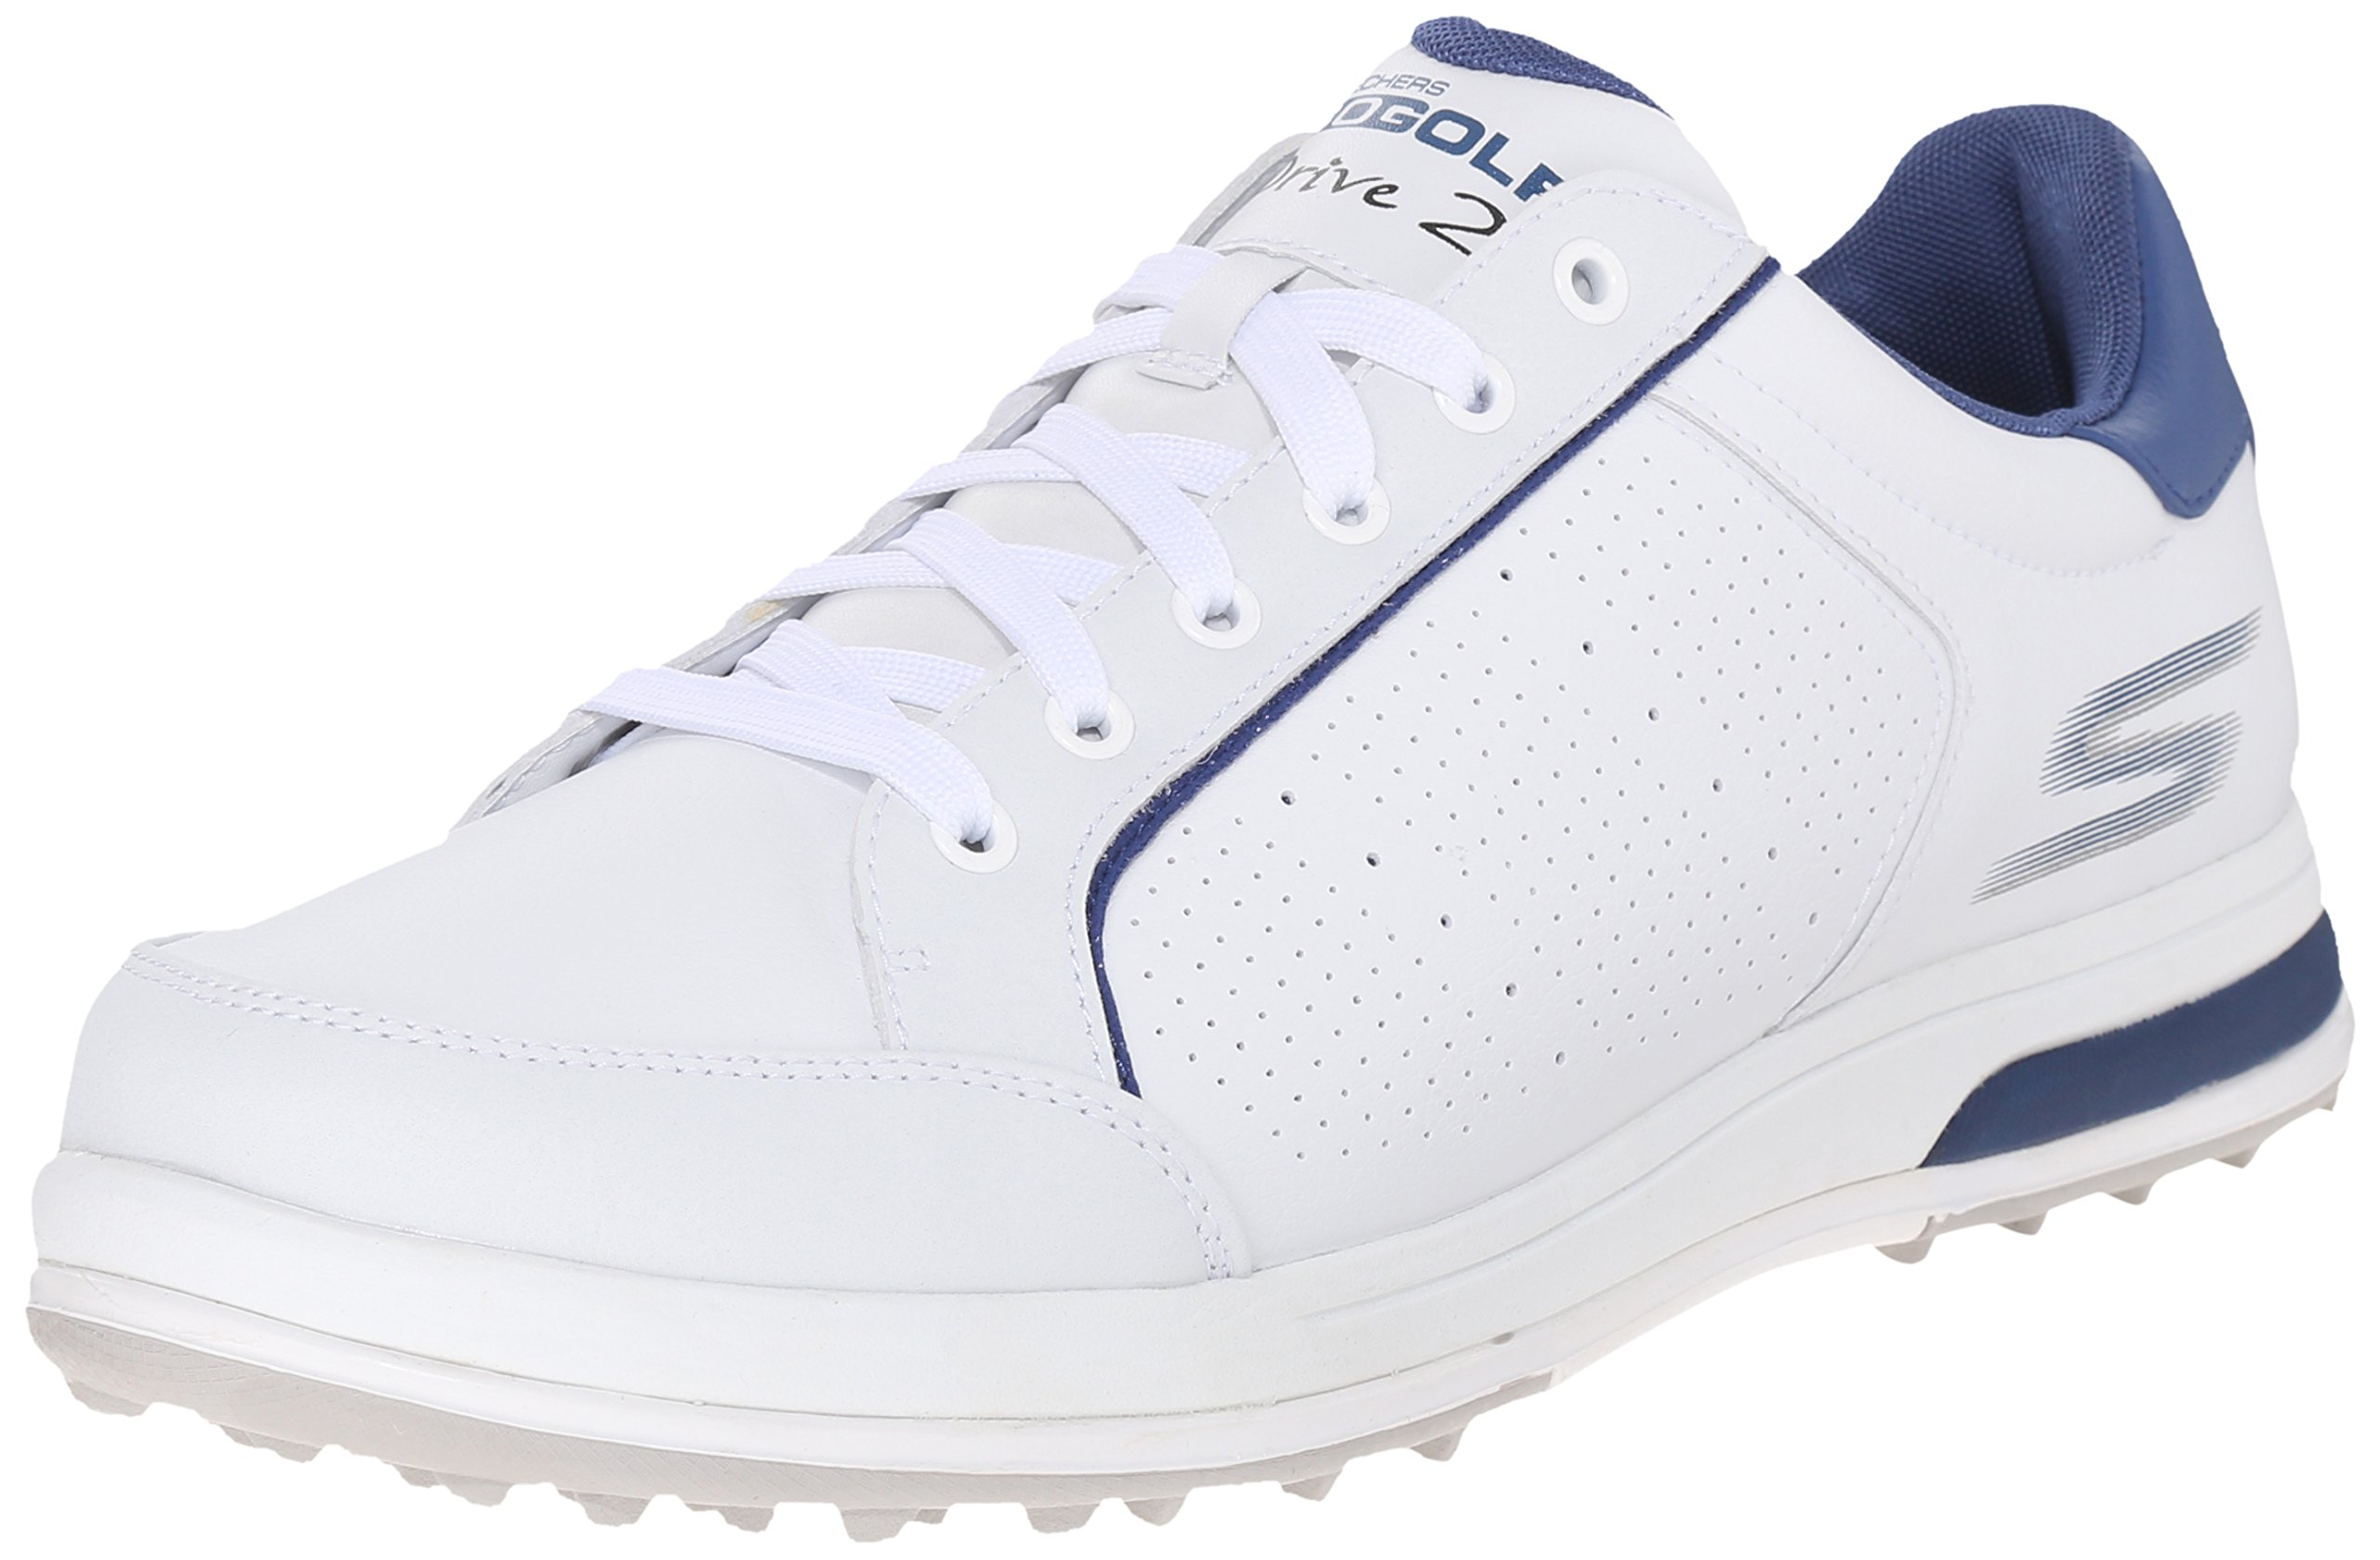 Skechers Performance Men's Go Golf Drive 2 Golf Shoe,White/Navy,10.5 M US by Skechers